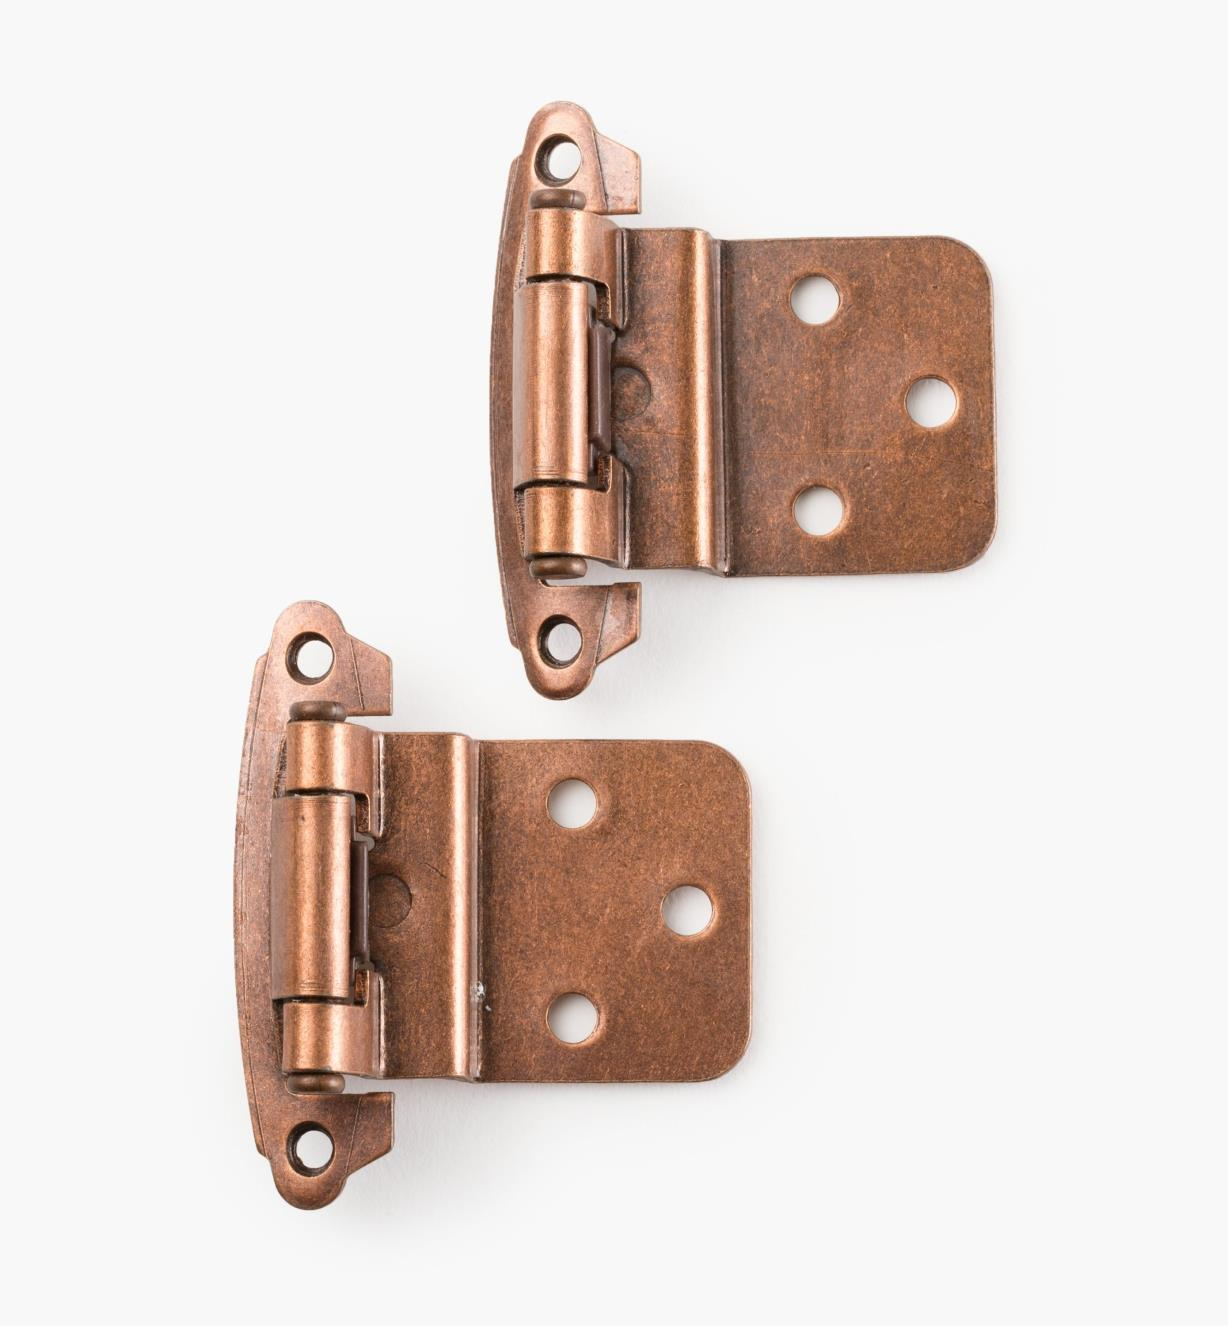 03W1212 - Belwith Surface Self-Closing Offset Hinges, Antique Copper, 10 pr.